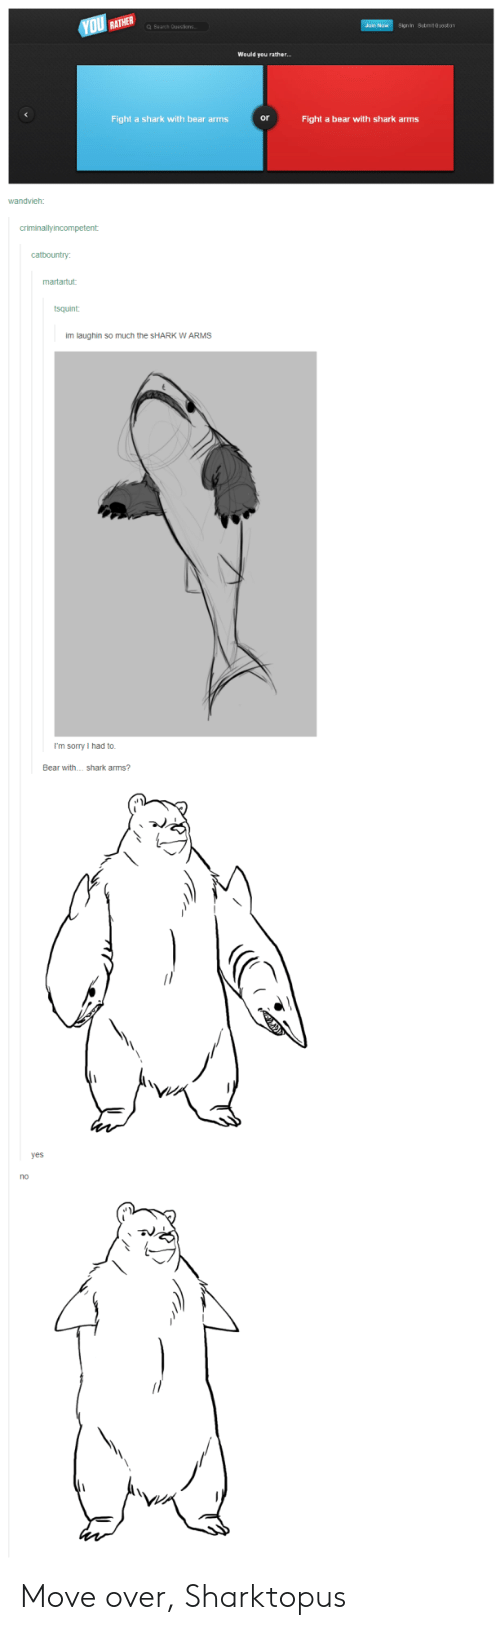 Laughin: Sign in Subm Qusstion  Would you rather...  Fight a shark with bear arms  or  Fight a bear with shark arms  im laughin so much the sHARK W ARMS  I'm sorry I had to.  Bear with...shark arms?  yes  no Move over, Sharktopus